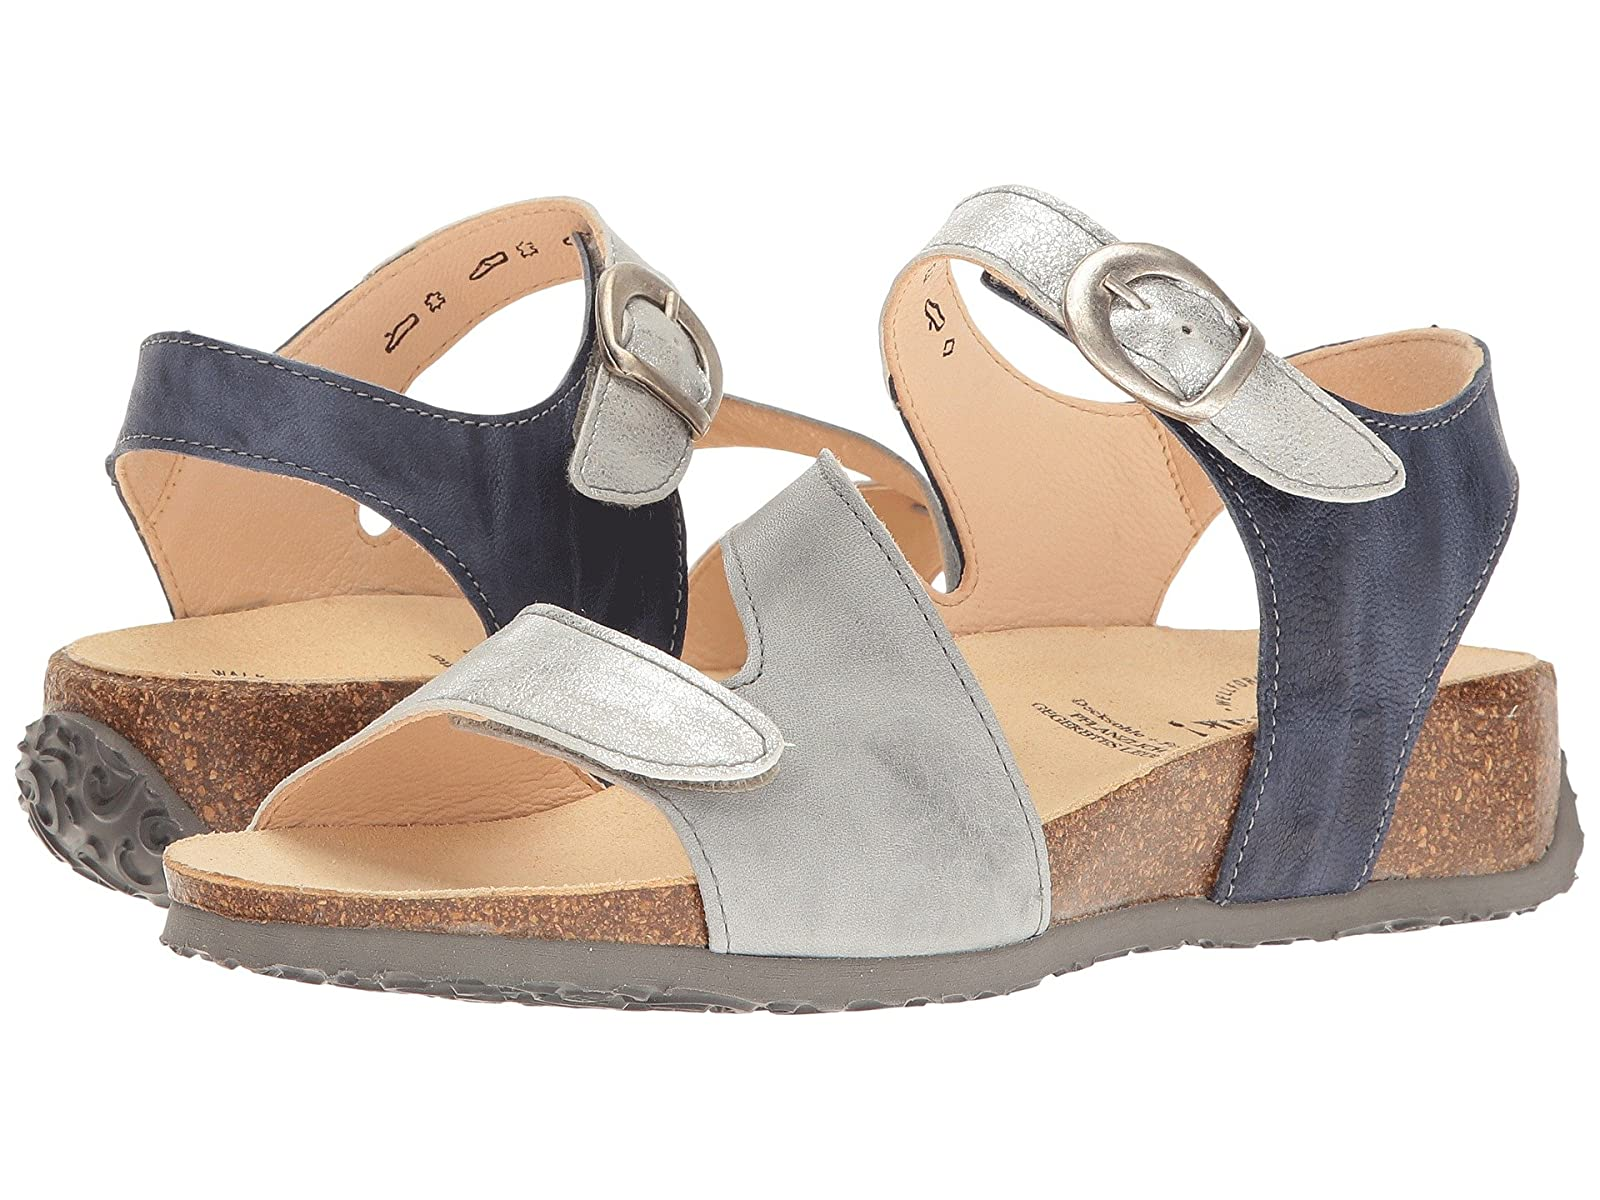 Think! Mizzi - 80359Cheap and distinctive eye-catching shoes